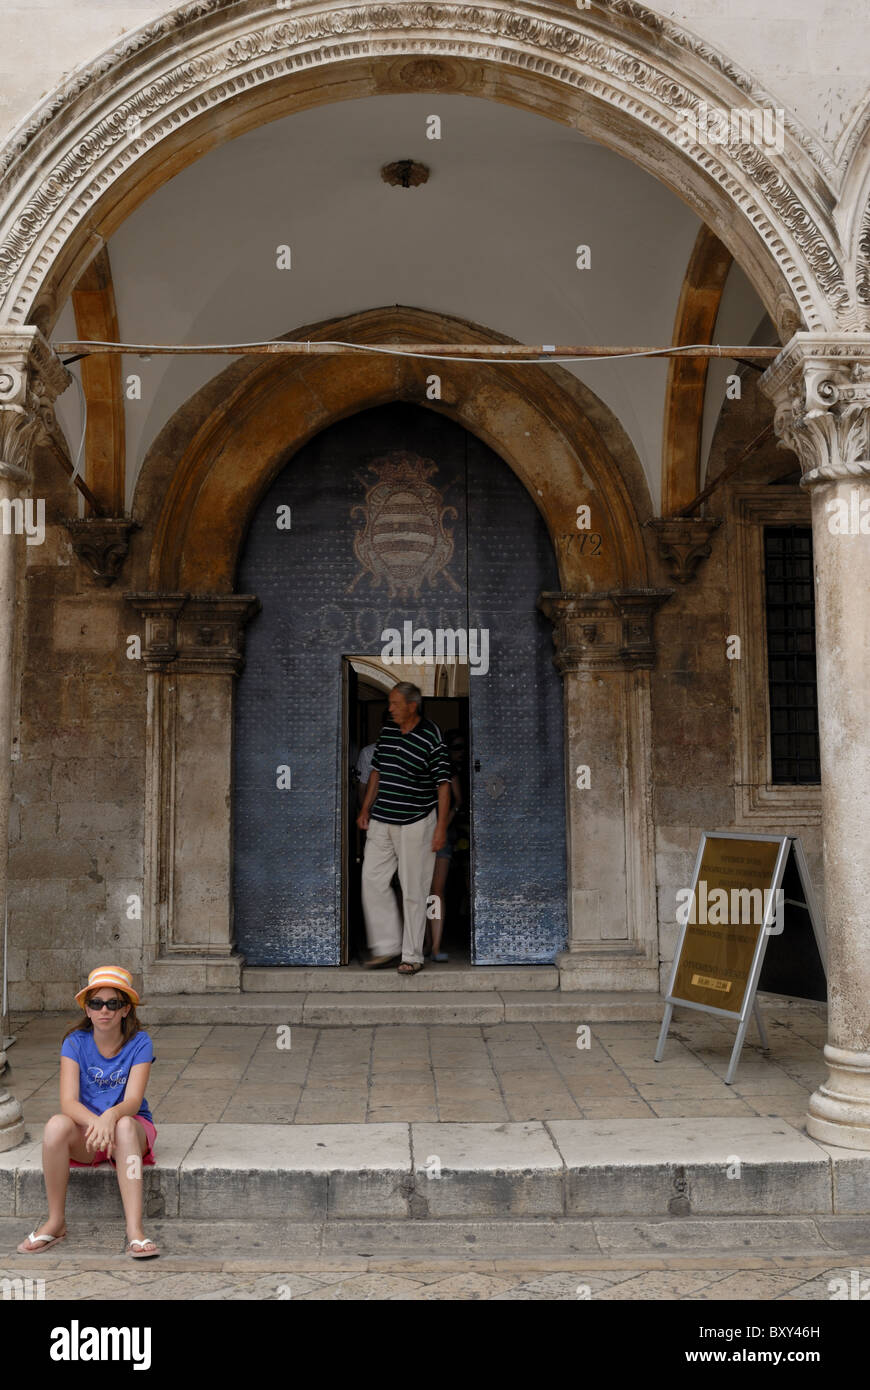 The entrance to the Sponza Palace. The Sponza Palace is originating from the 14th century, rebuilt 1516-1522. The - Stock Image